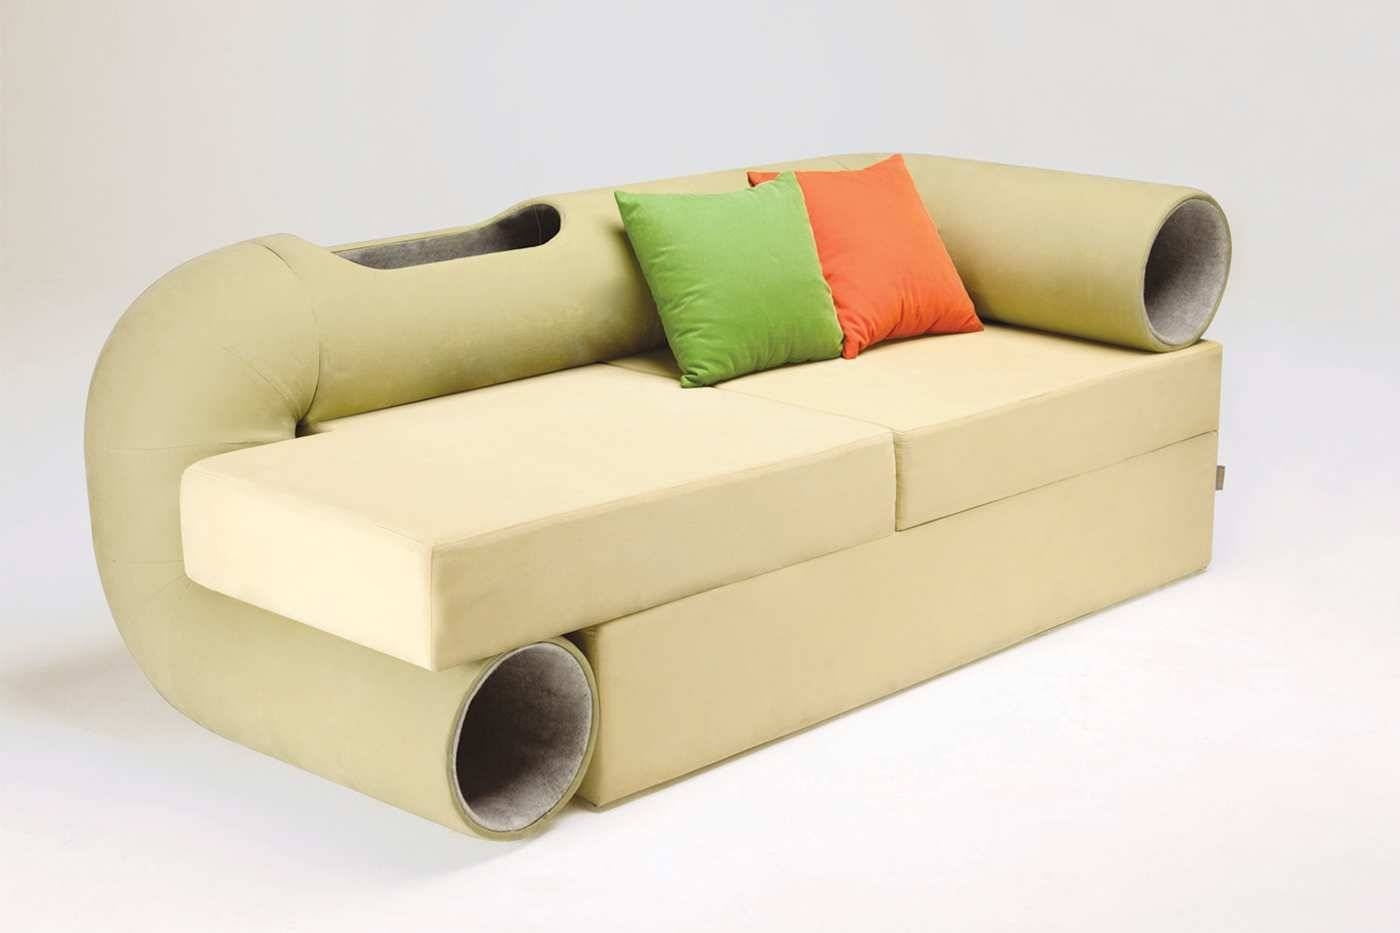 Cat Tunnel Sofa, The Smart Space Furniture - House Design Ideas with regard to Cat Tunnel Couches (Image 5 of 15)